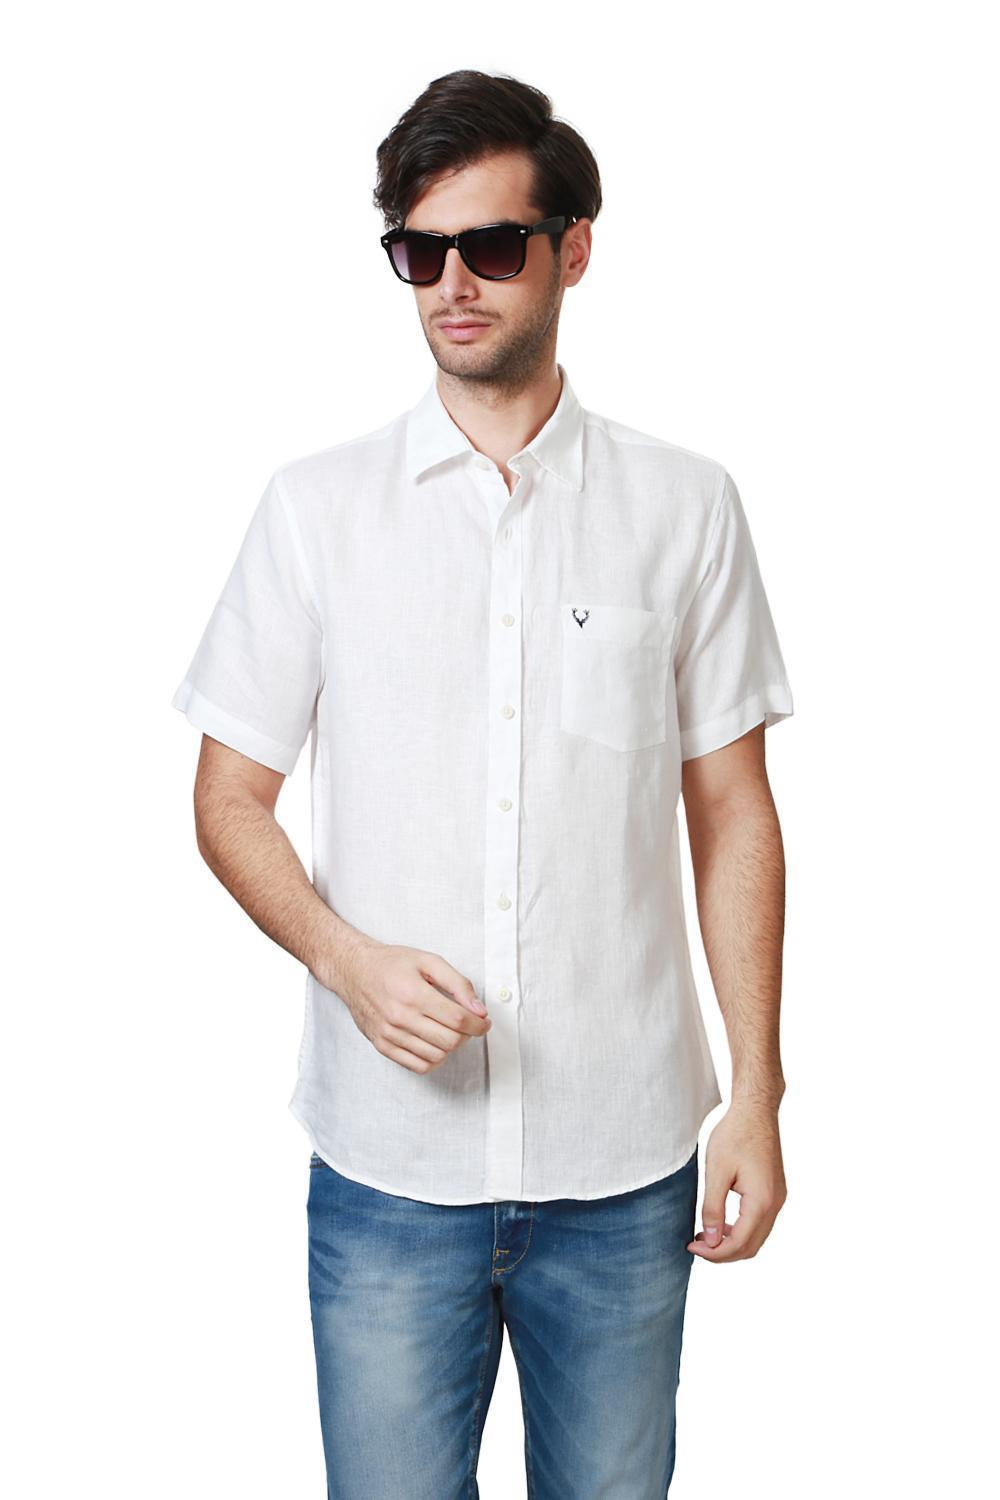 7d607ee4 Allen Solly Shirts, Allen Solly White Shirt for Men at Planetfashion.in